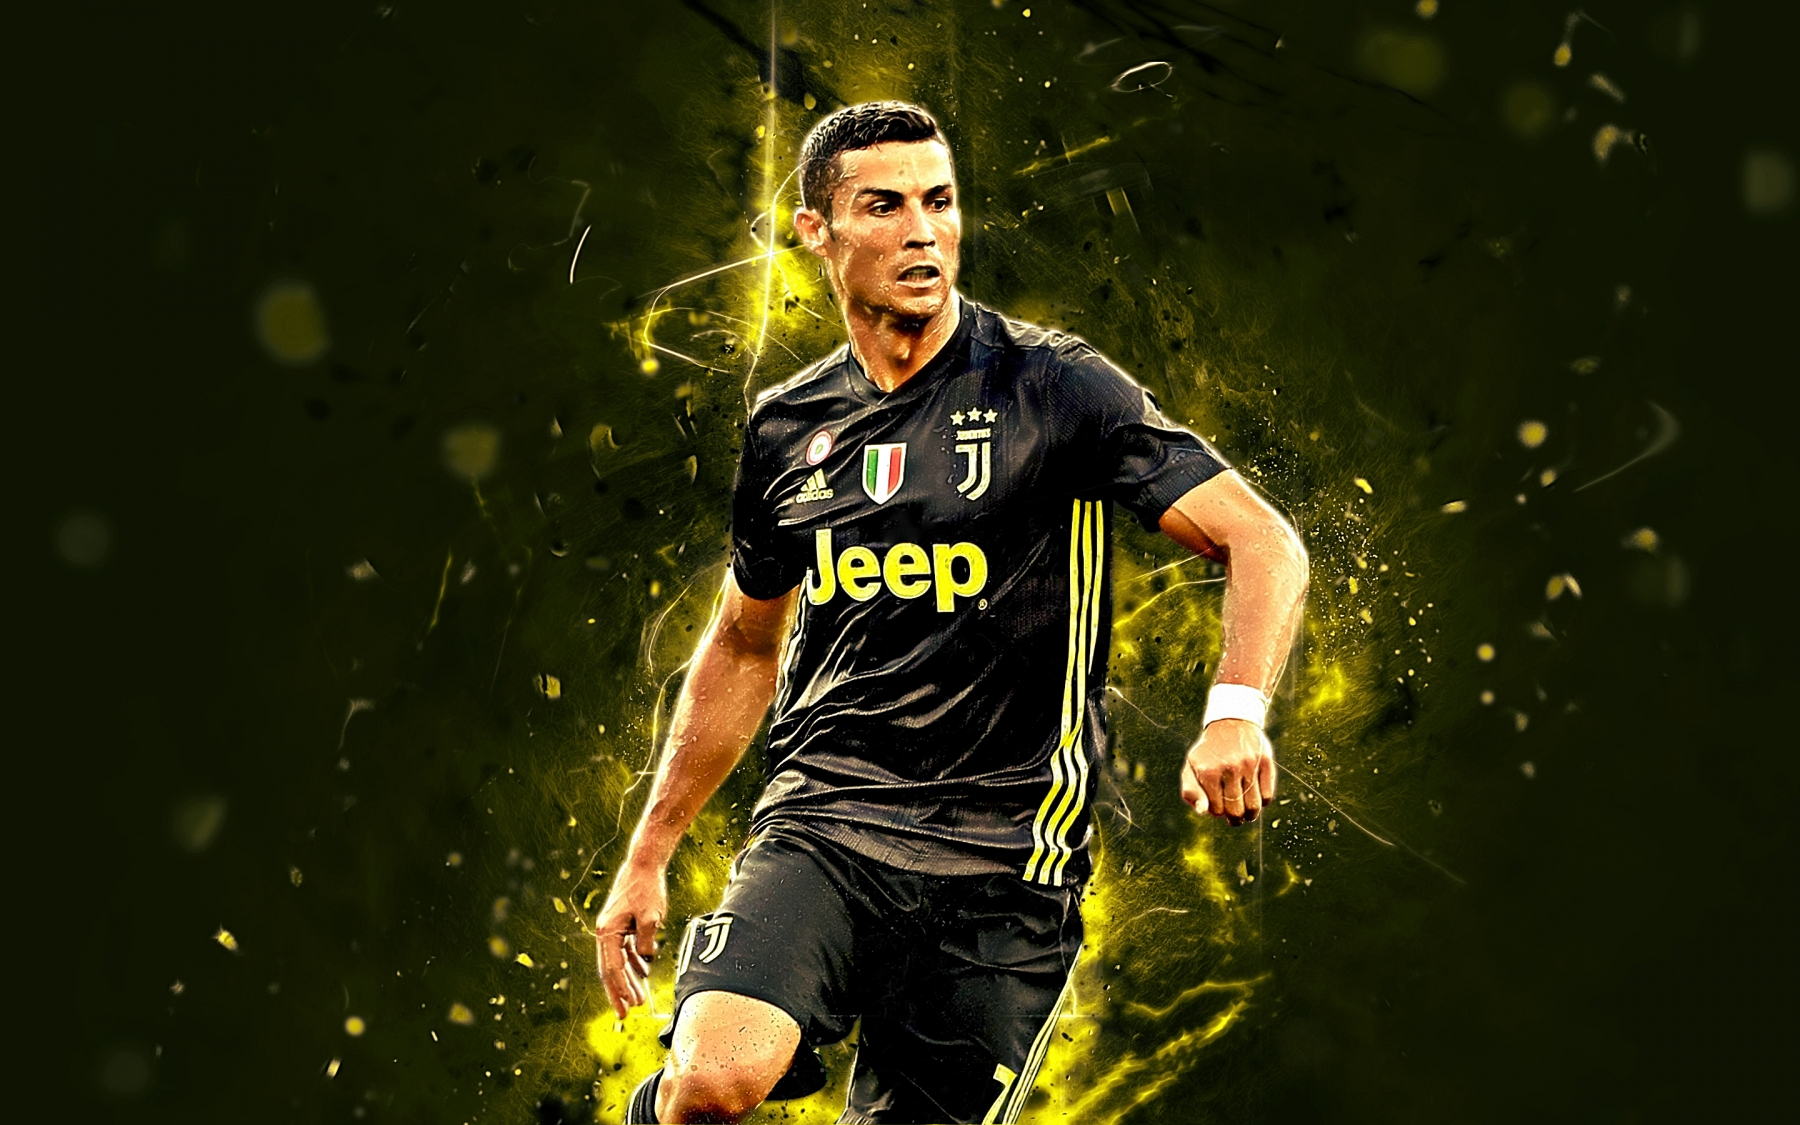 Cristiano ronaldo hd wallpapers and background images yl computing - Cristiano ronaldo pictures hd ...